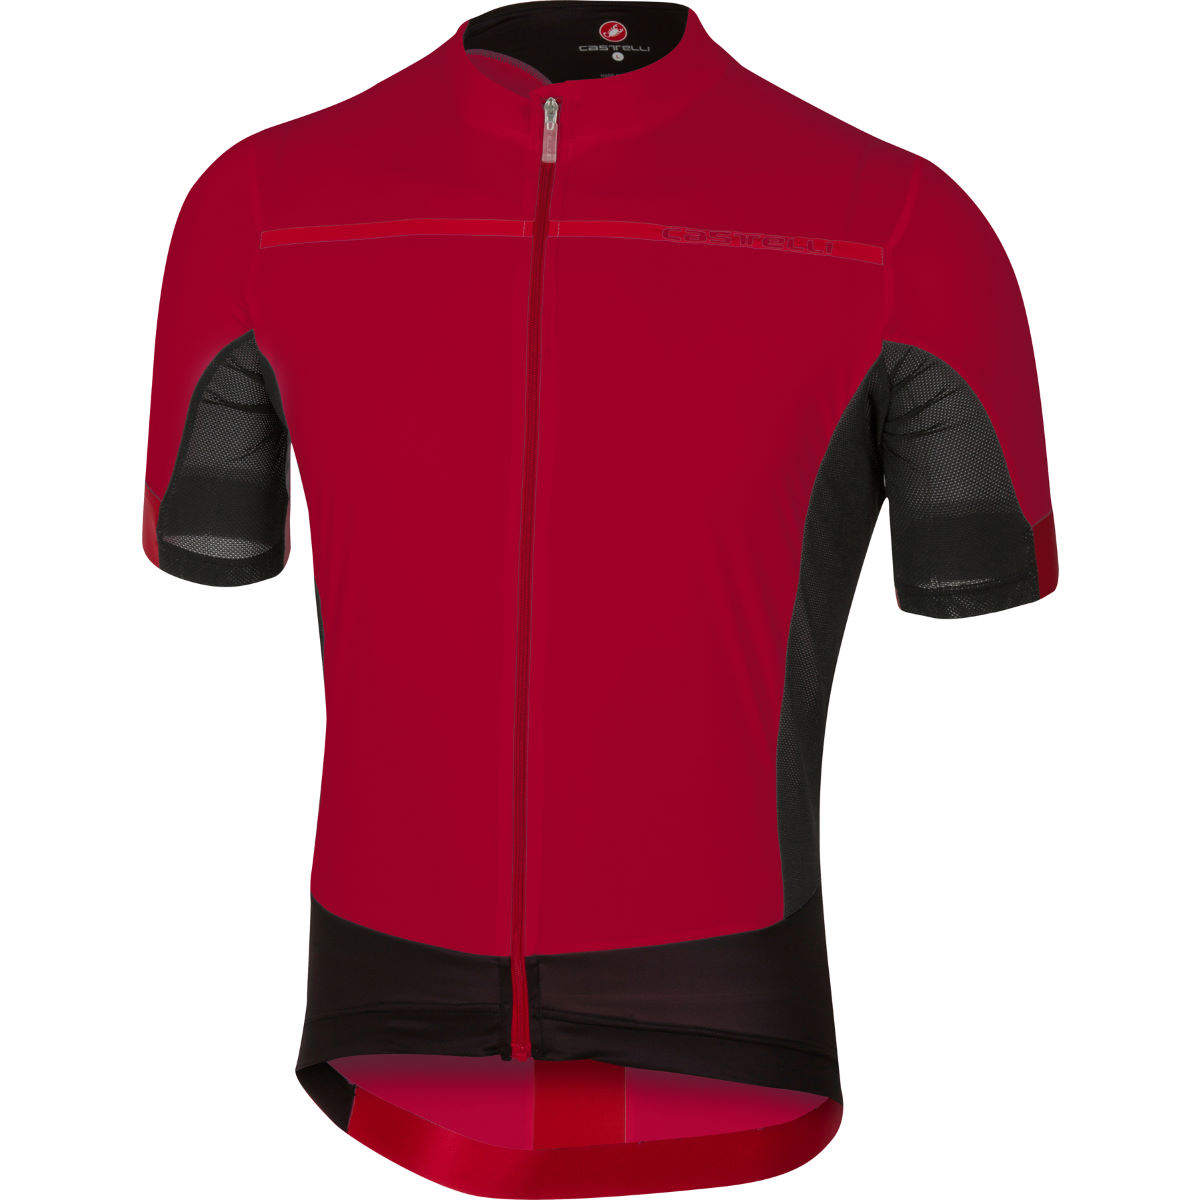 Maillot Castelli Forza Pro - XL Ruby Red/Red Maillots vélo à manches courtes